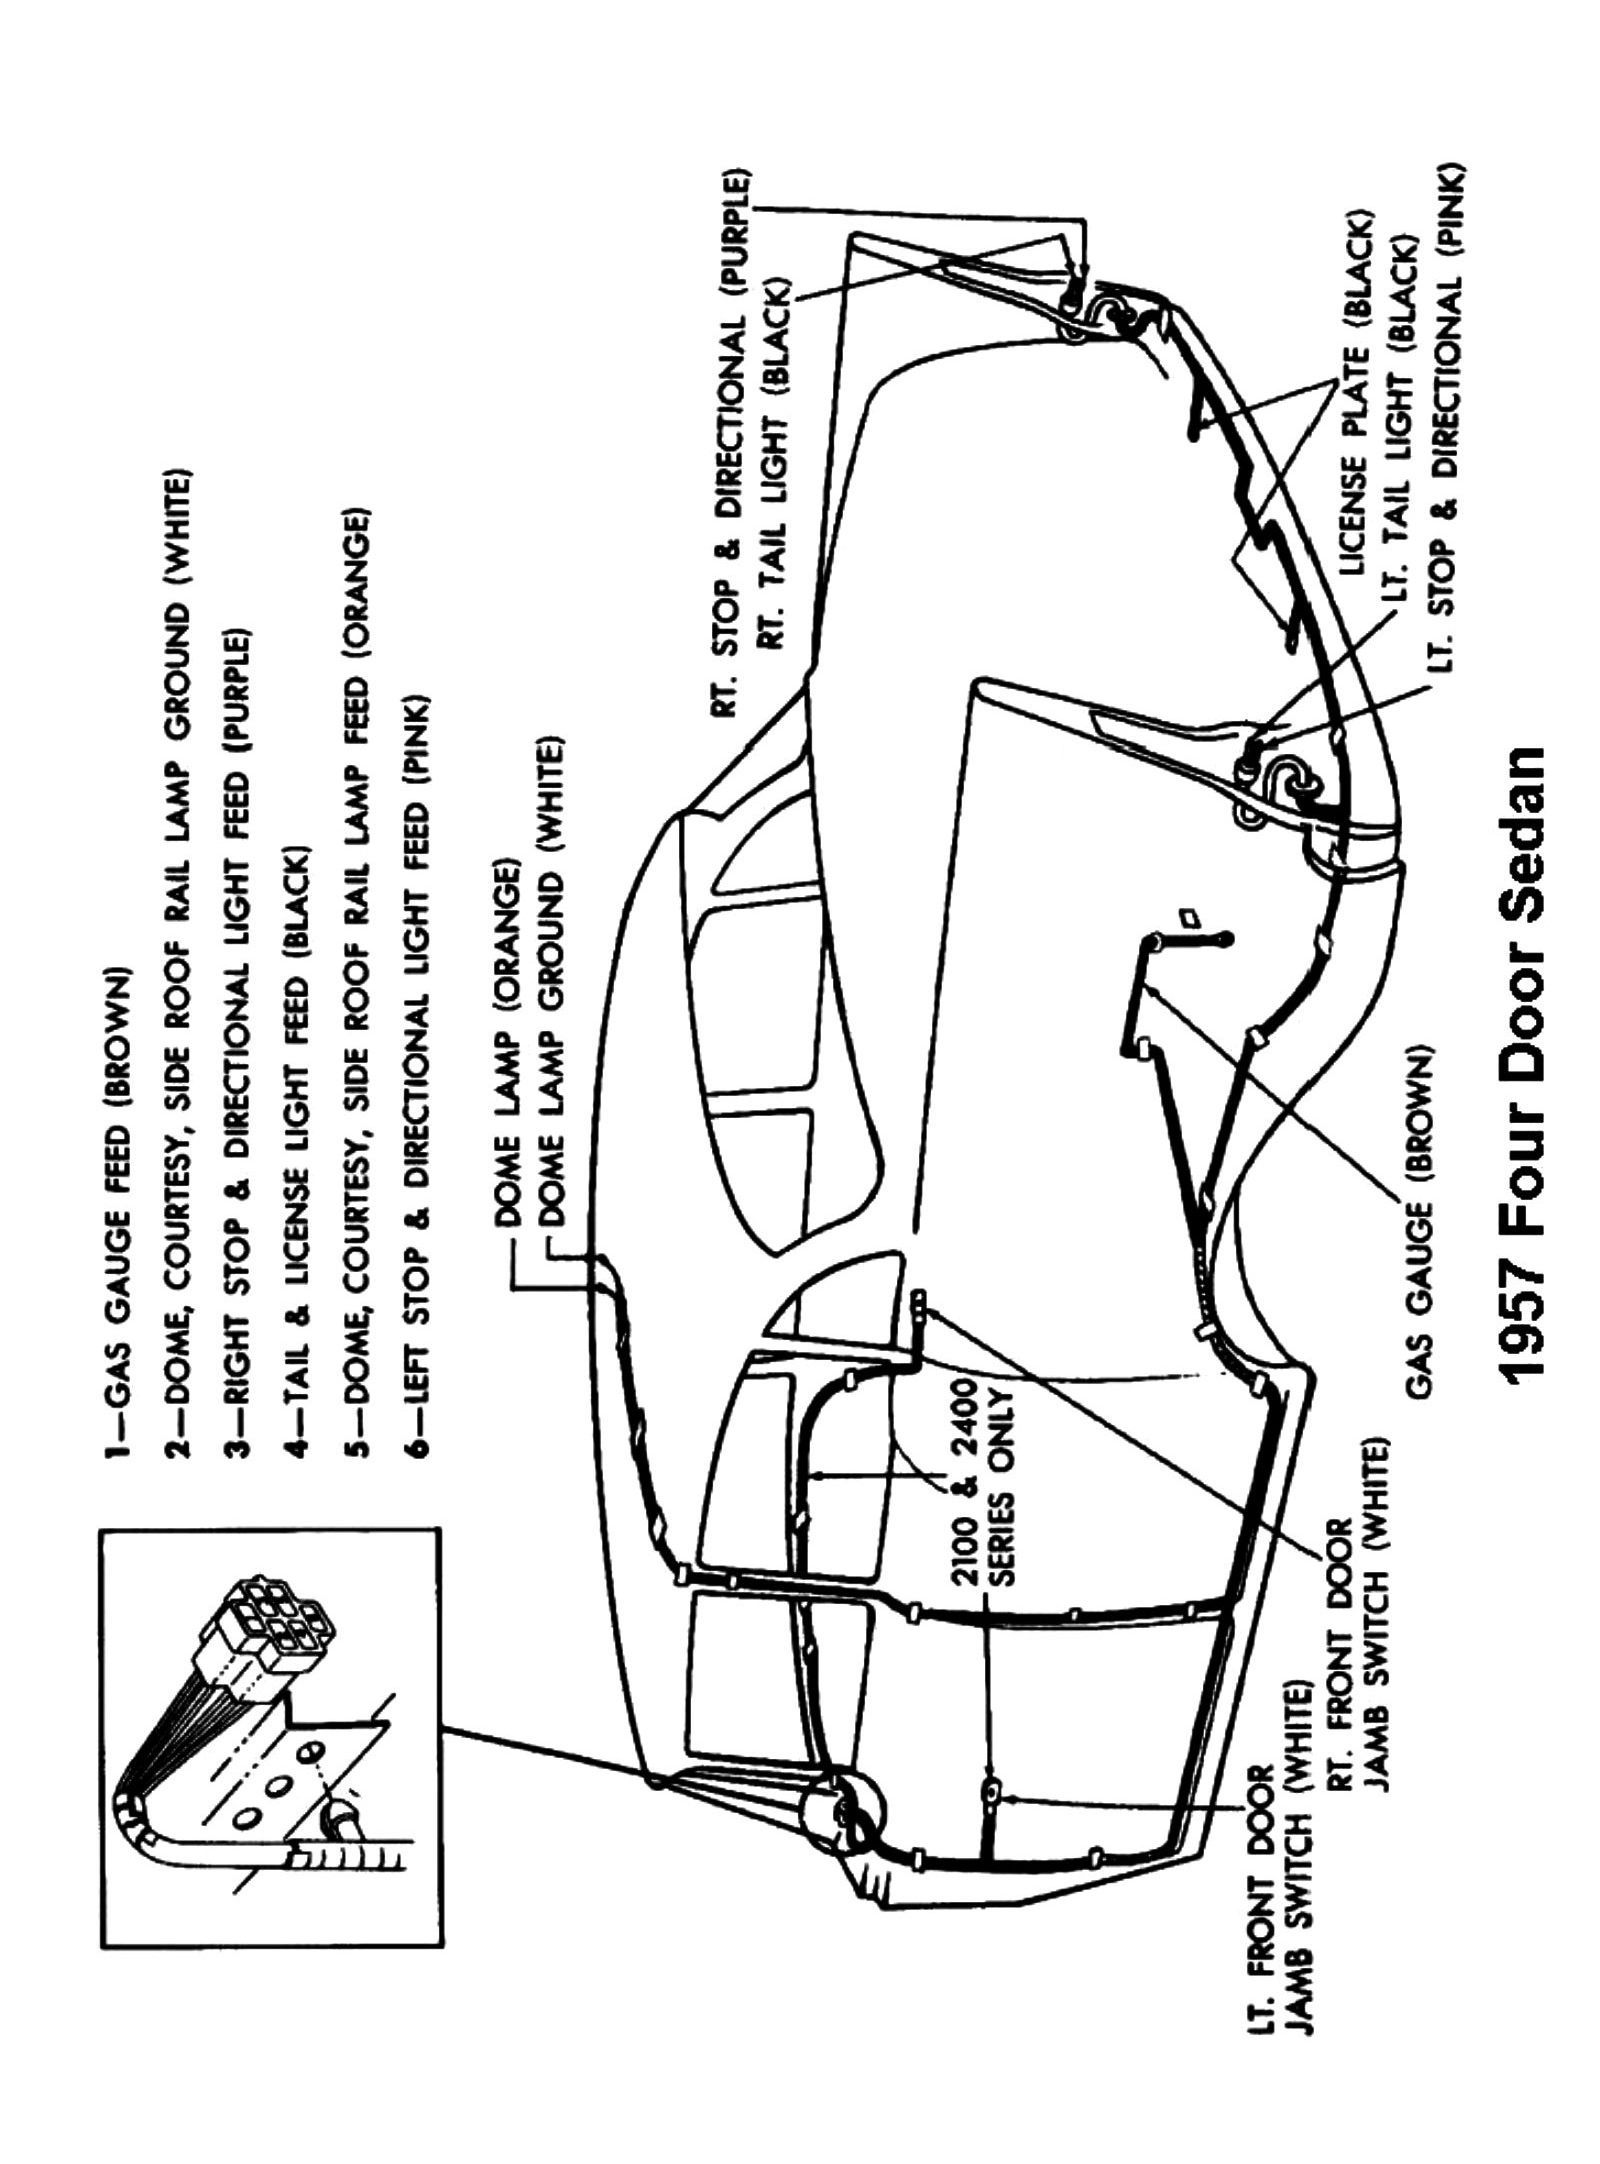 1957 Chevy Turn Signal Wiring Diagram